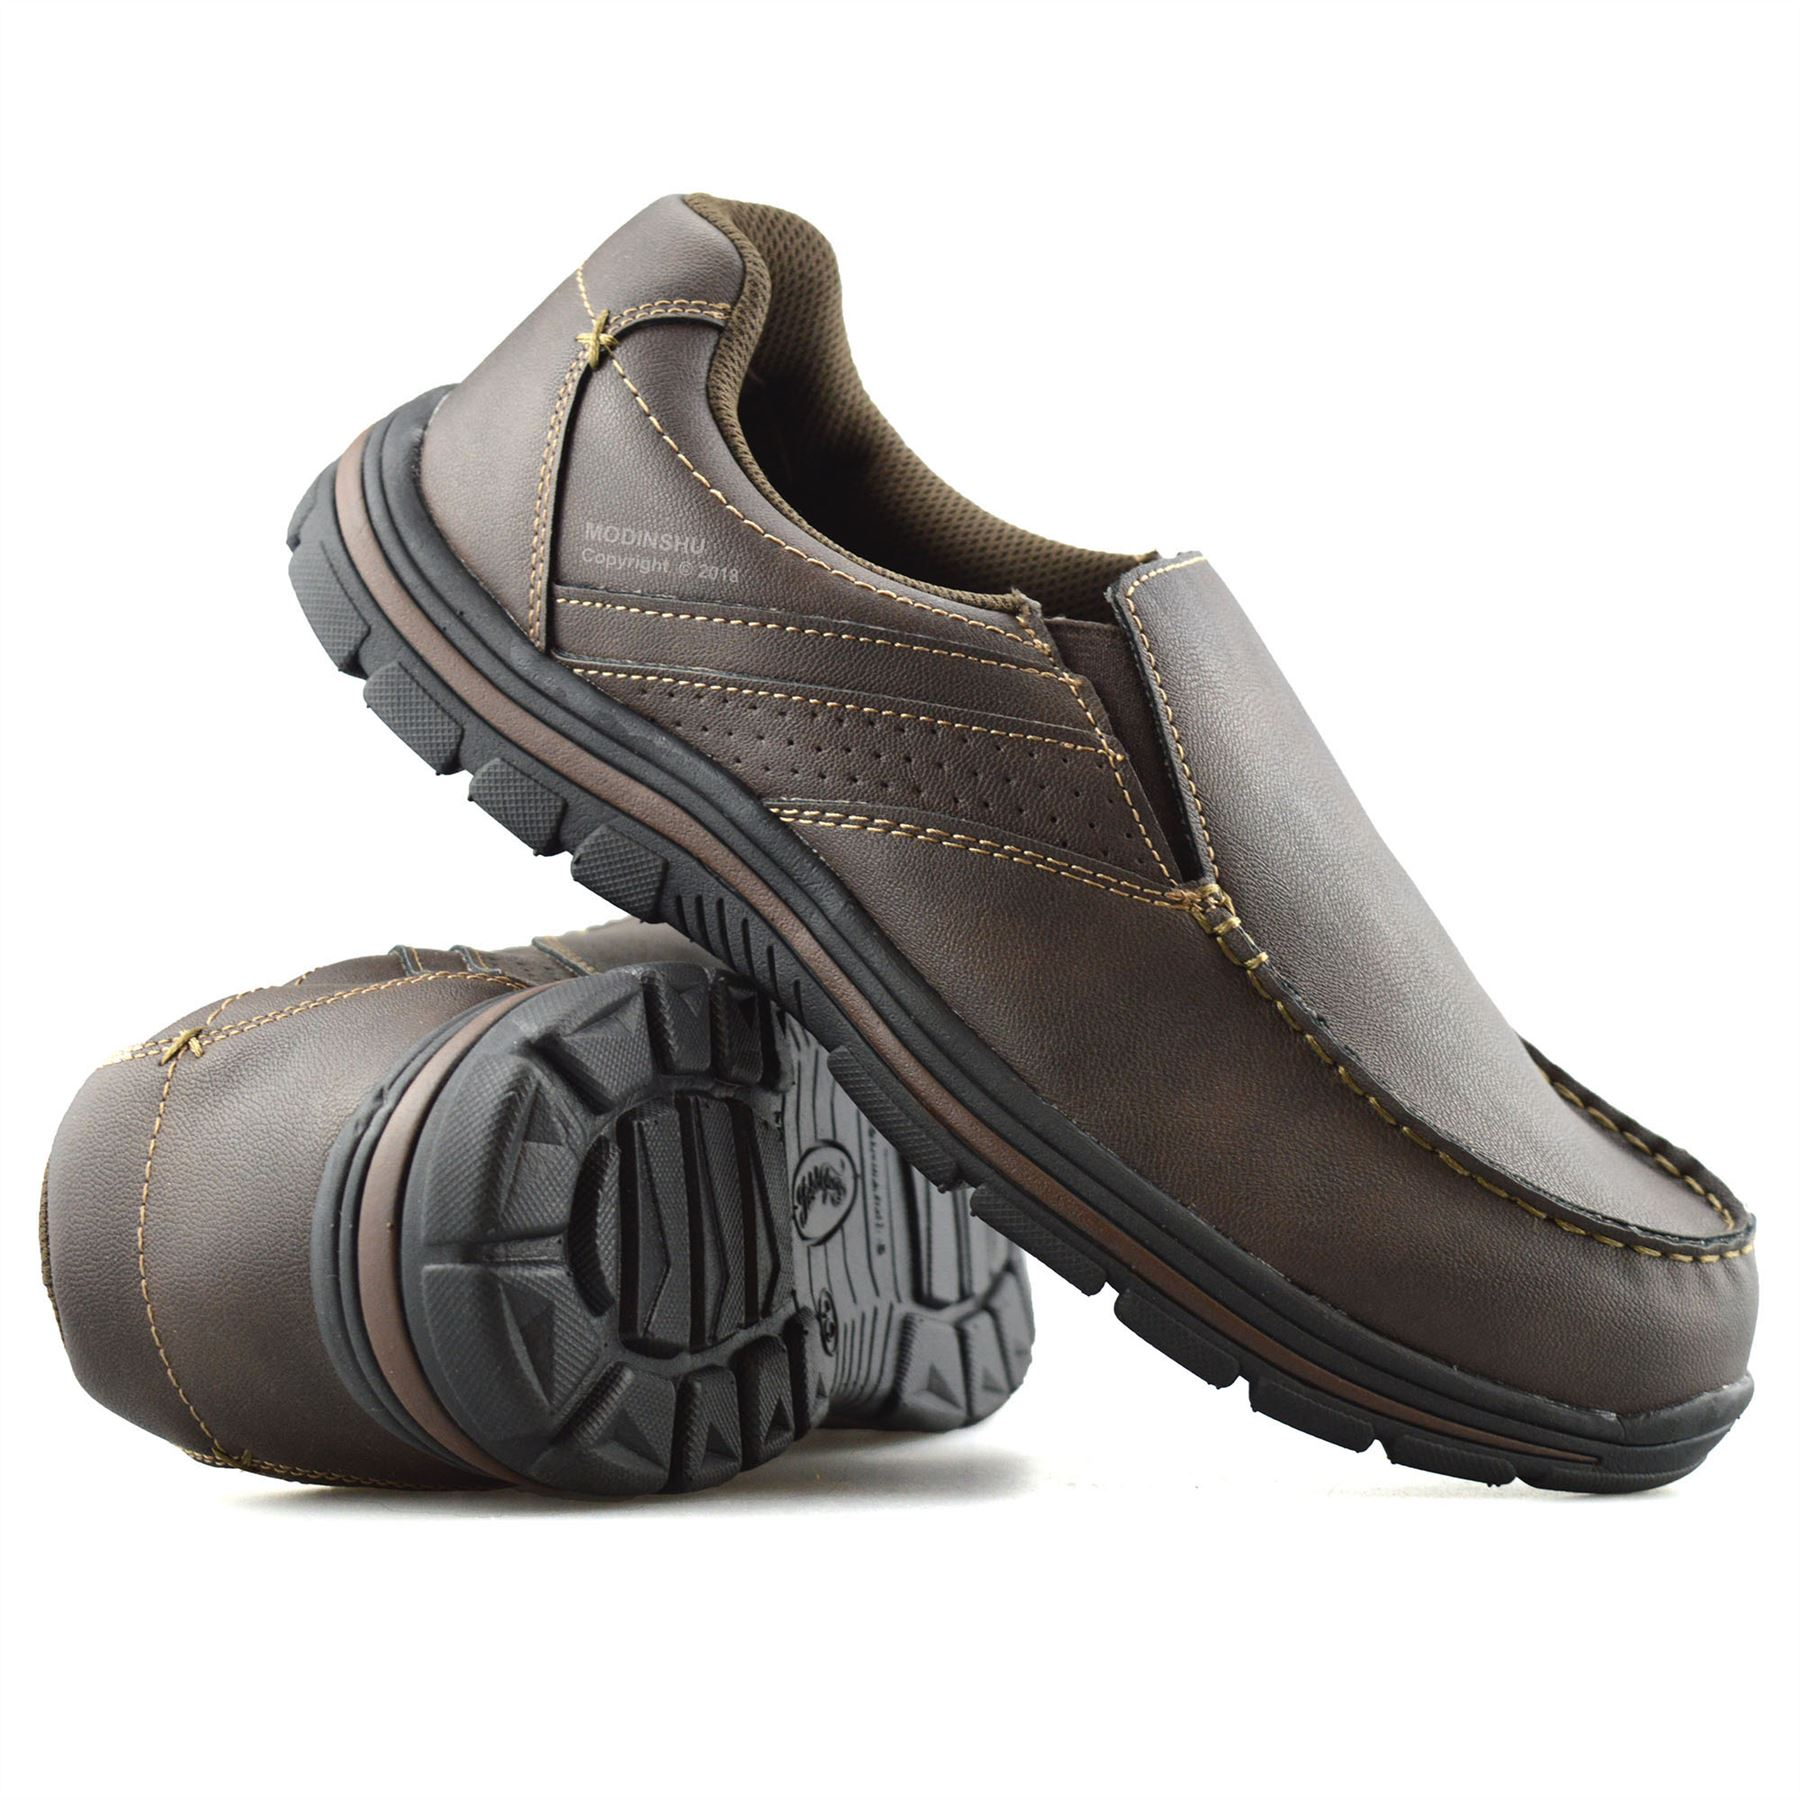 Mens-Casual-Memory-Foam-Slip-On-Walking-Moccasin-Loafers-Driving-Boat-Shoes-Size thumbnail 23